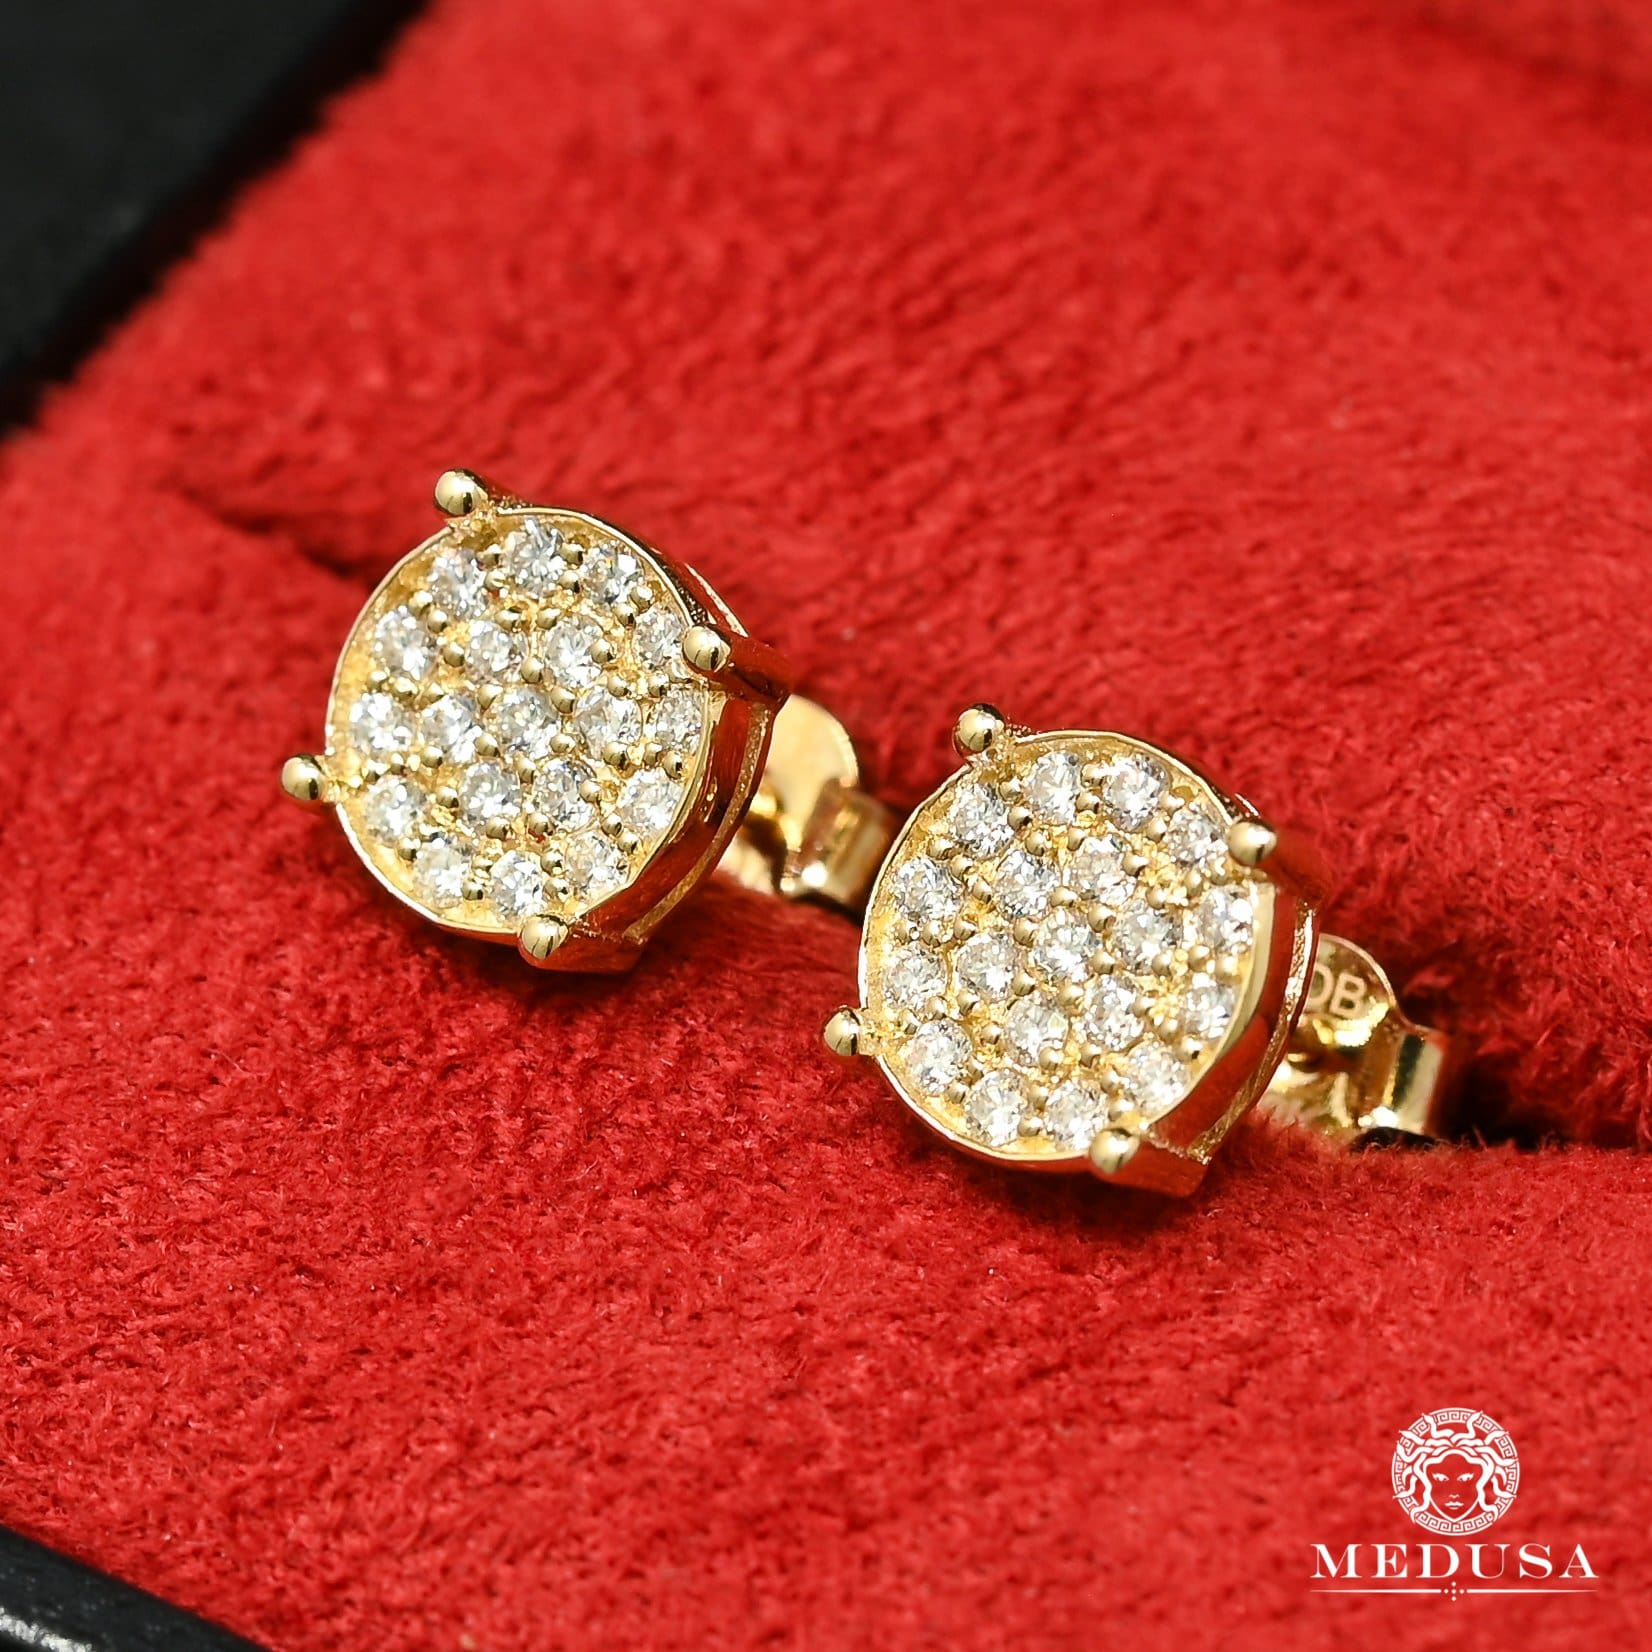 10K Gold Diamond Studs | Studs Earrings D14 - MR0010 Yellow Gold